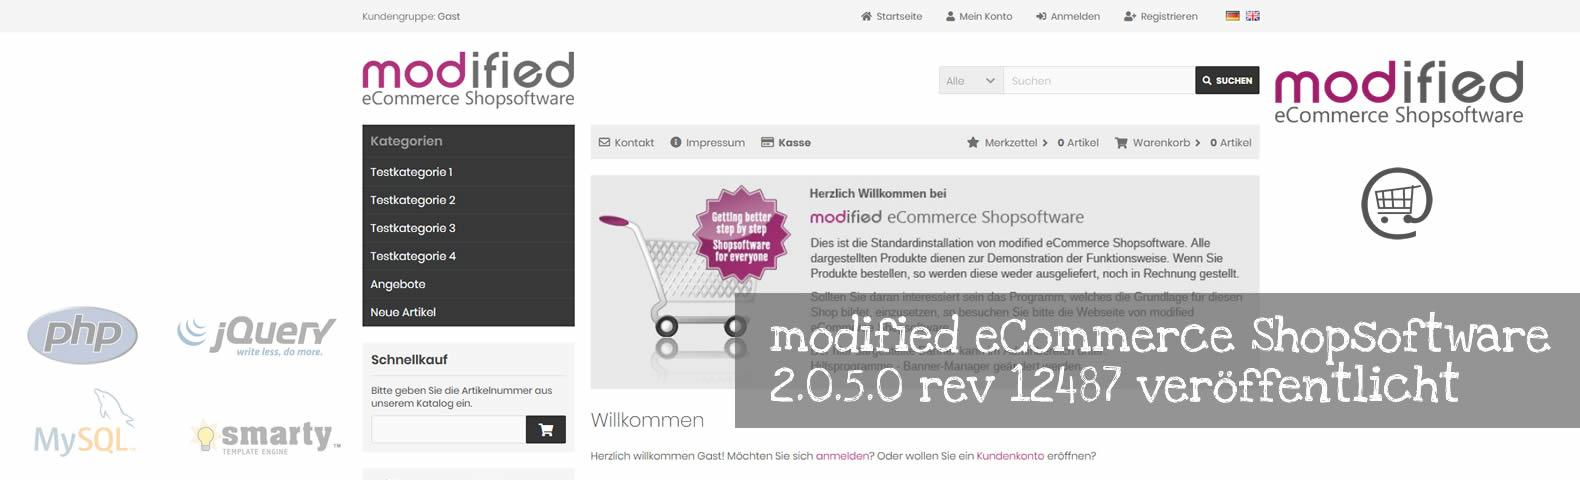 modified eCommerce Shopsoftware 2.0.5.0 rev 12487 veröffentlicht